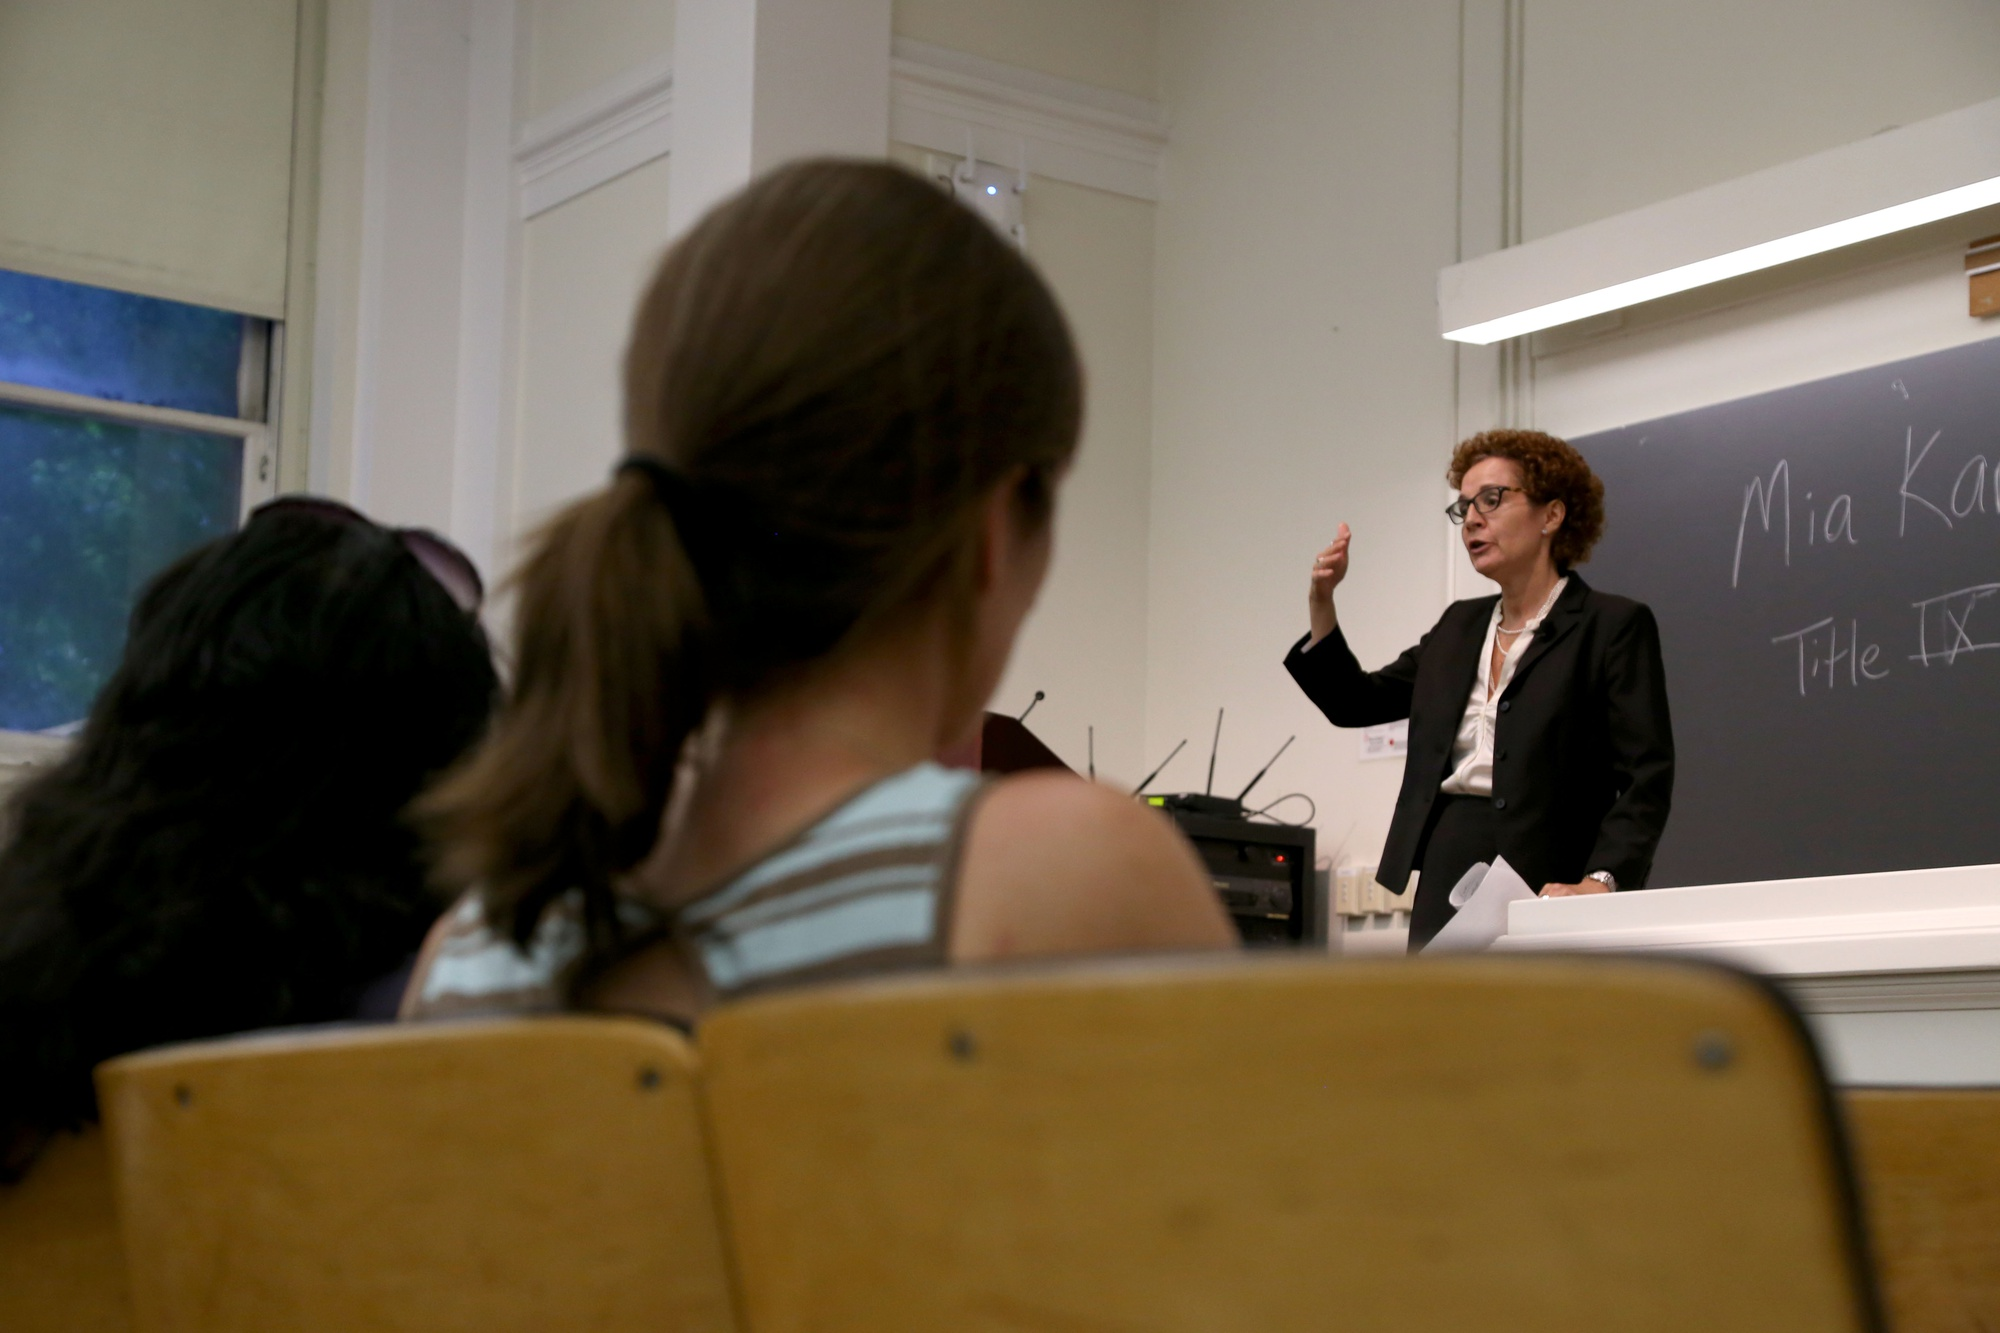 Members of the Harvard community watch as Mia Karvonides, Harvard's Title IX officer, speaks about the University's new sexual harassment policy and procedure in September. The community discussion, held in Emerson Hall, was the first in a series of meetings on sexual harassment policy open to the Harvard community.